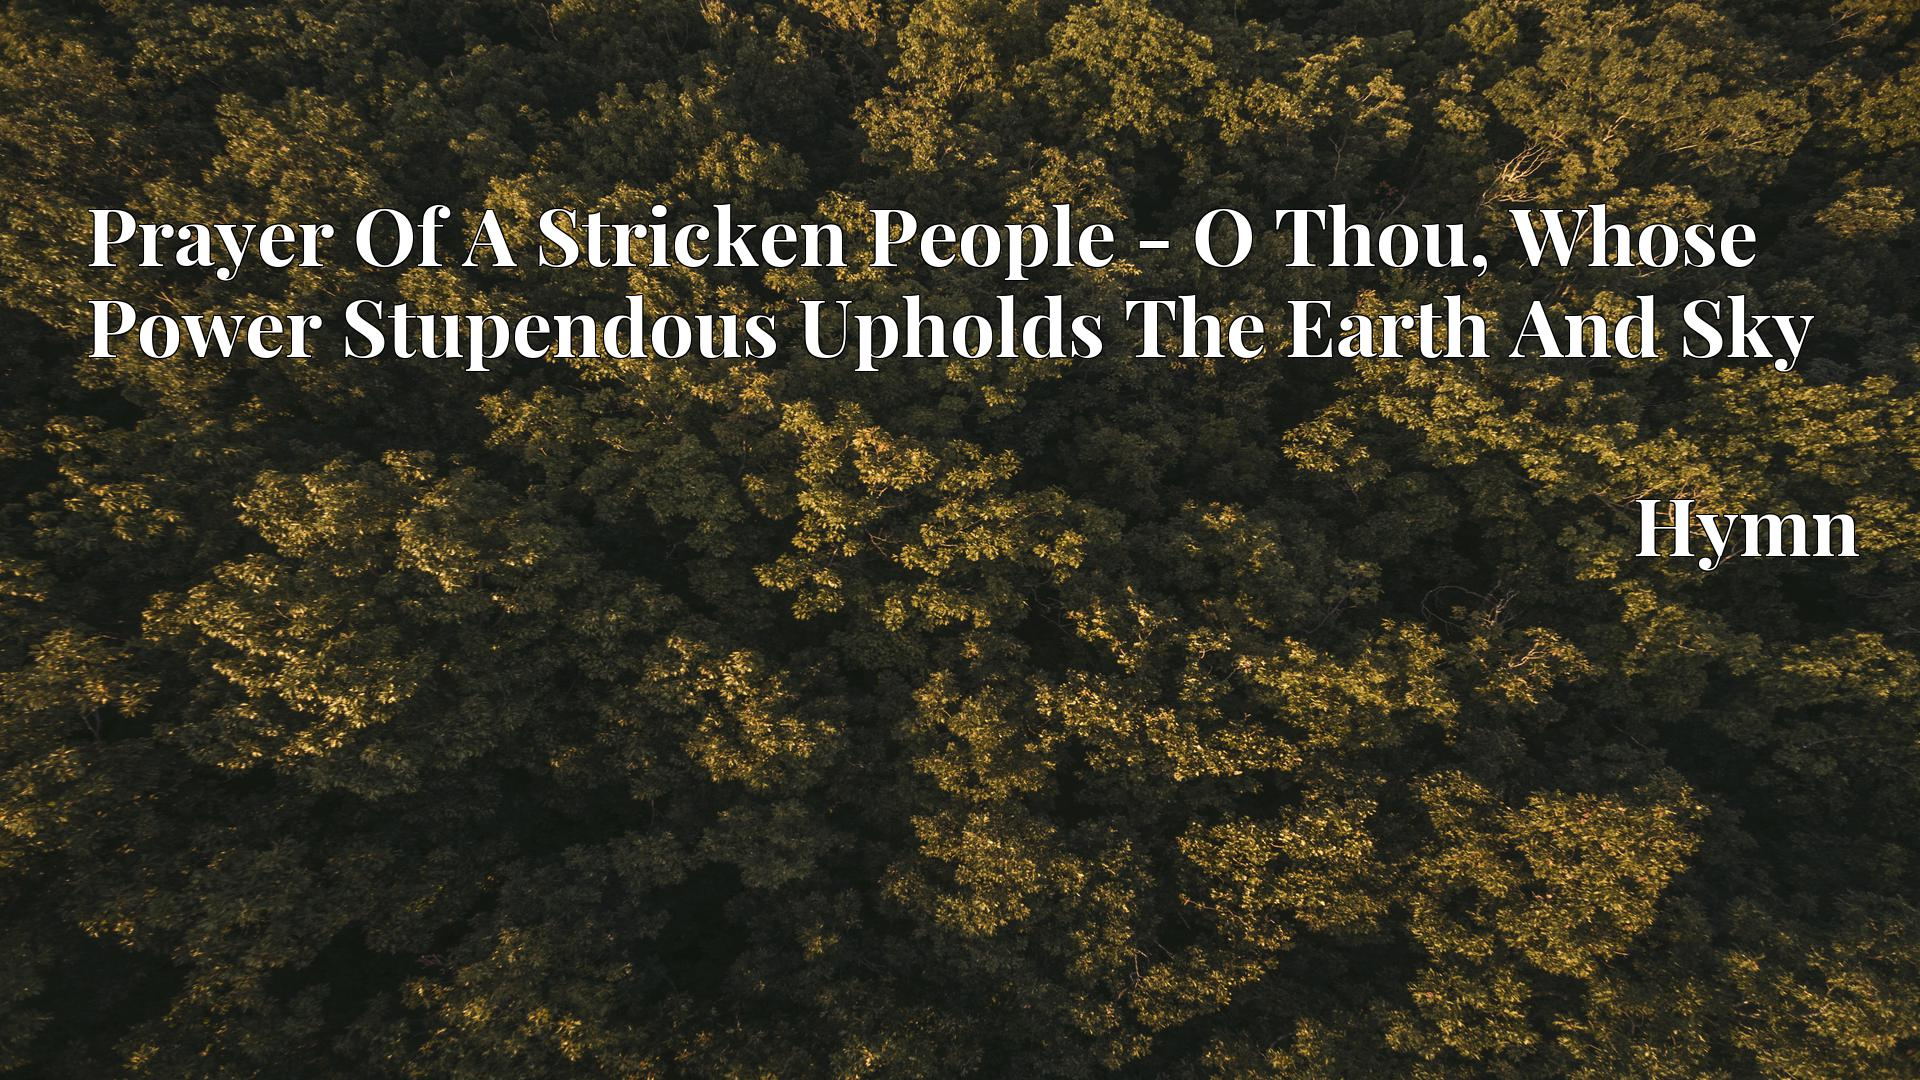 Prayer Of A Stricken People - O Thou, Whose Power Stupendous Upholds The Earth And Sky - Hymn